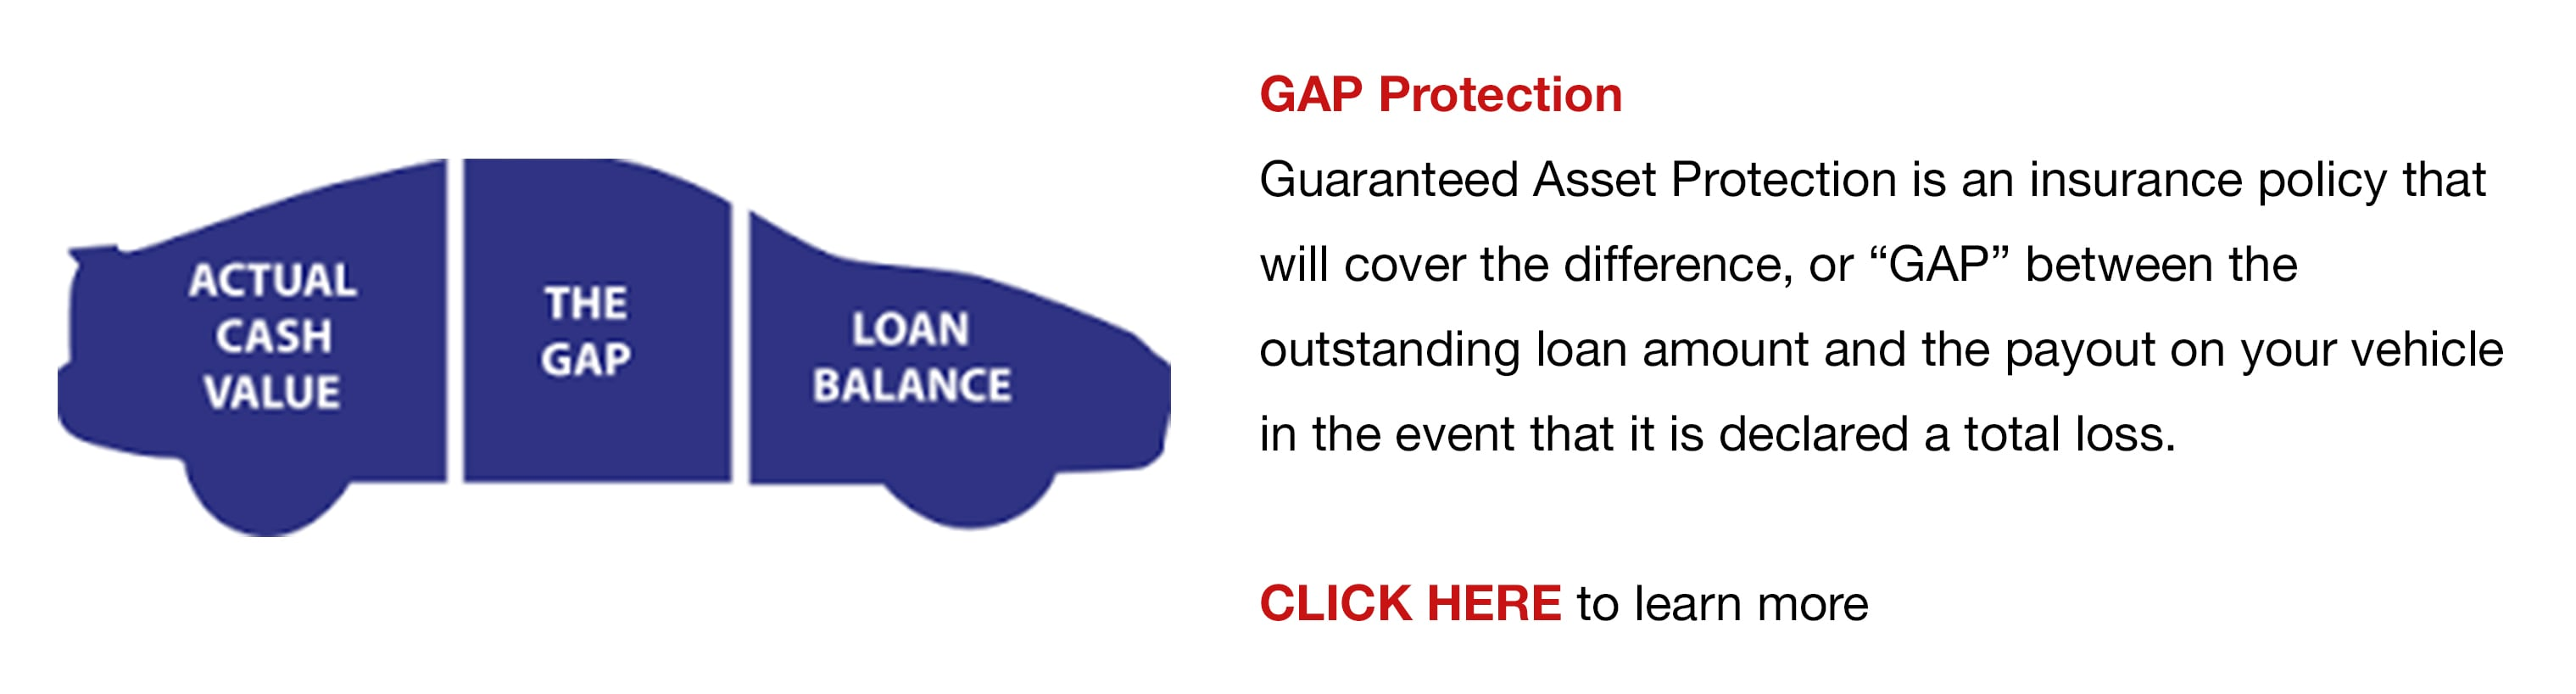 GAP Protection